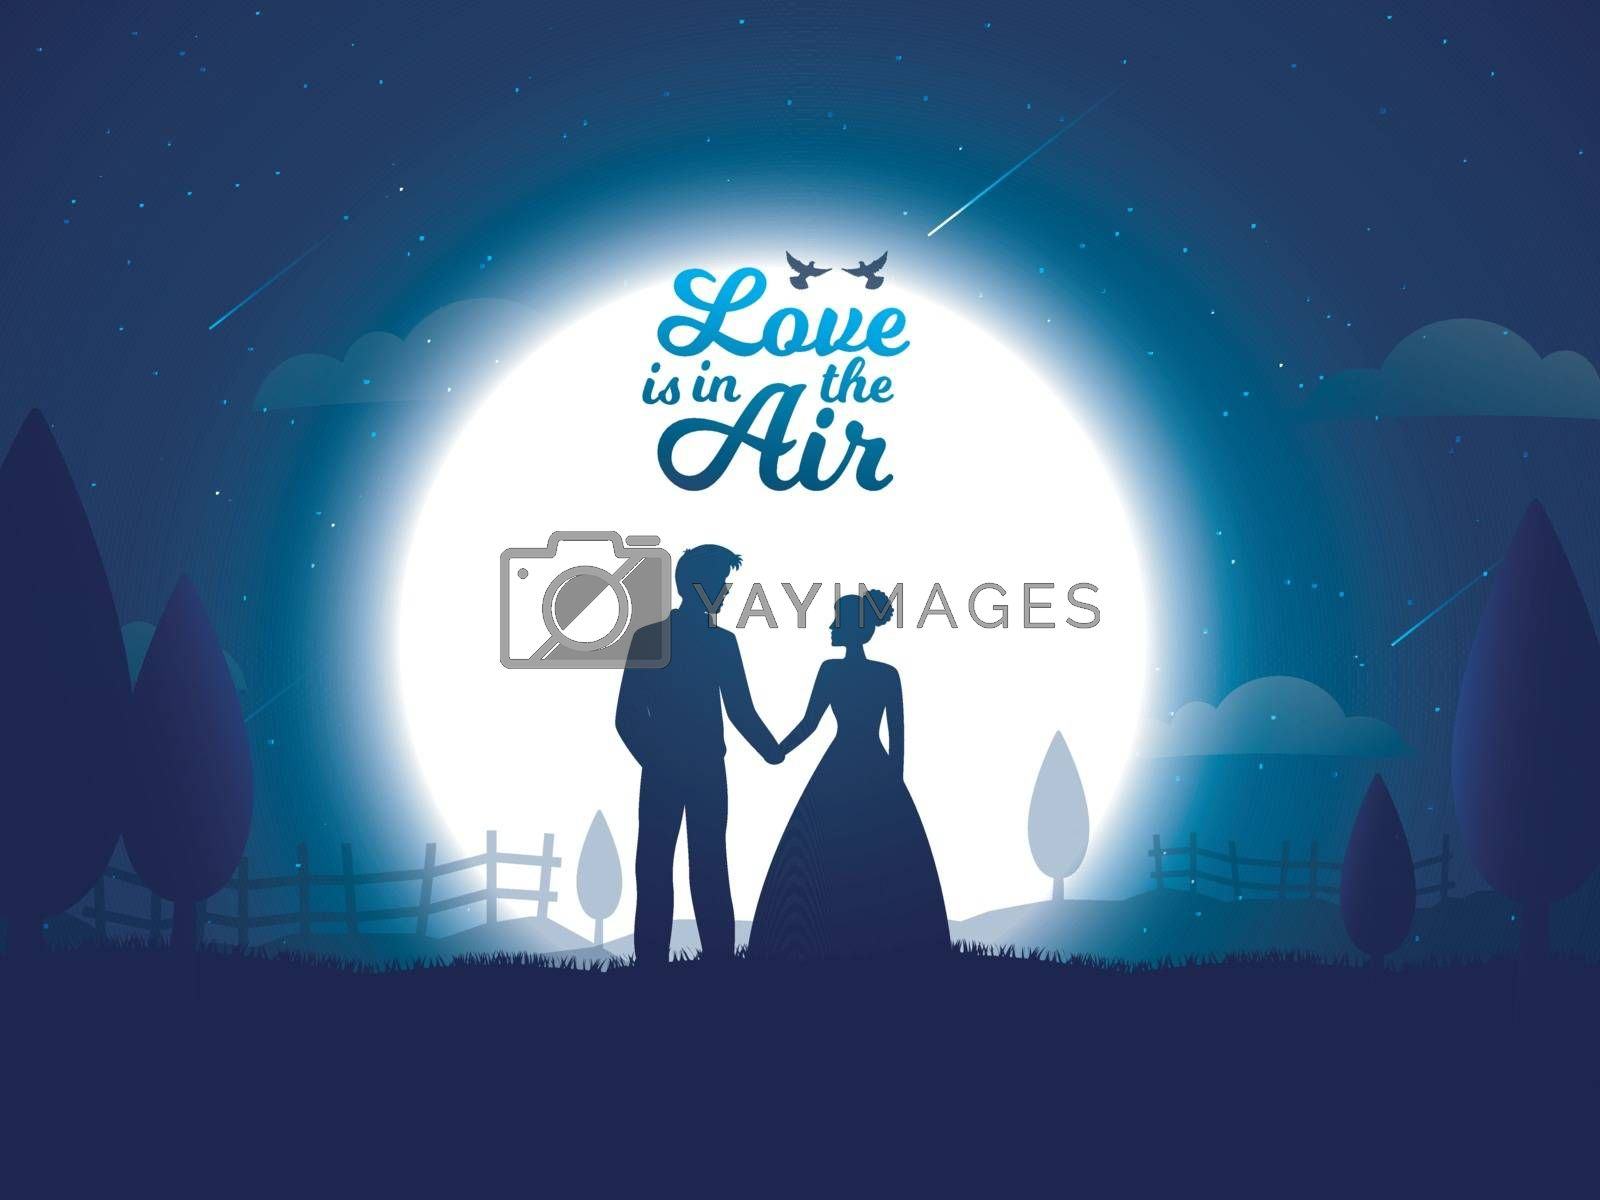 Valentine celebration poster or greeting card design with illustration of loving couple on full moon night background.